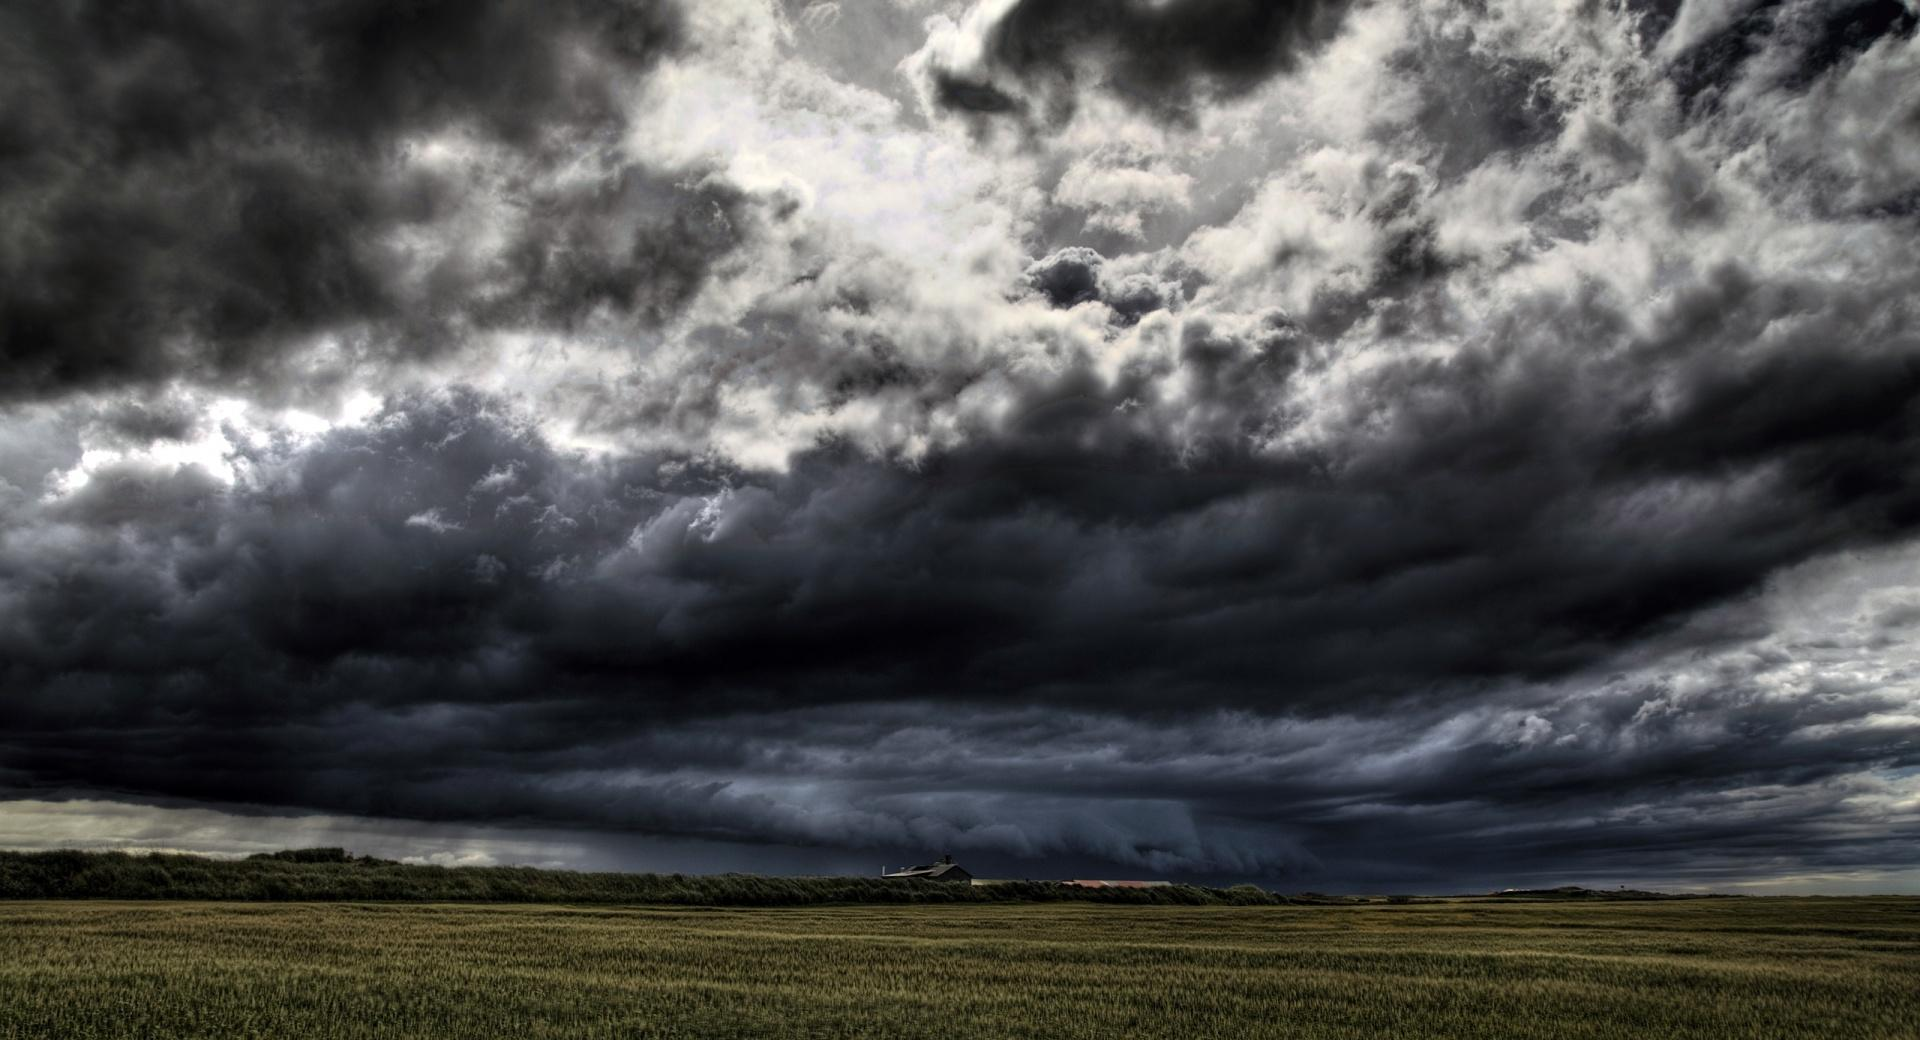 Storm Landscape wallpapers HD quality